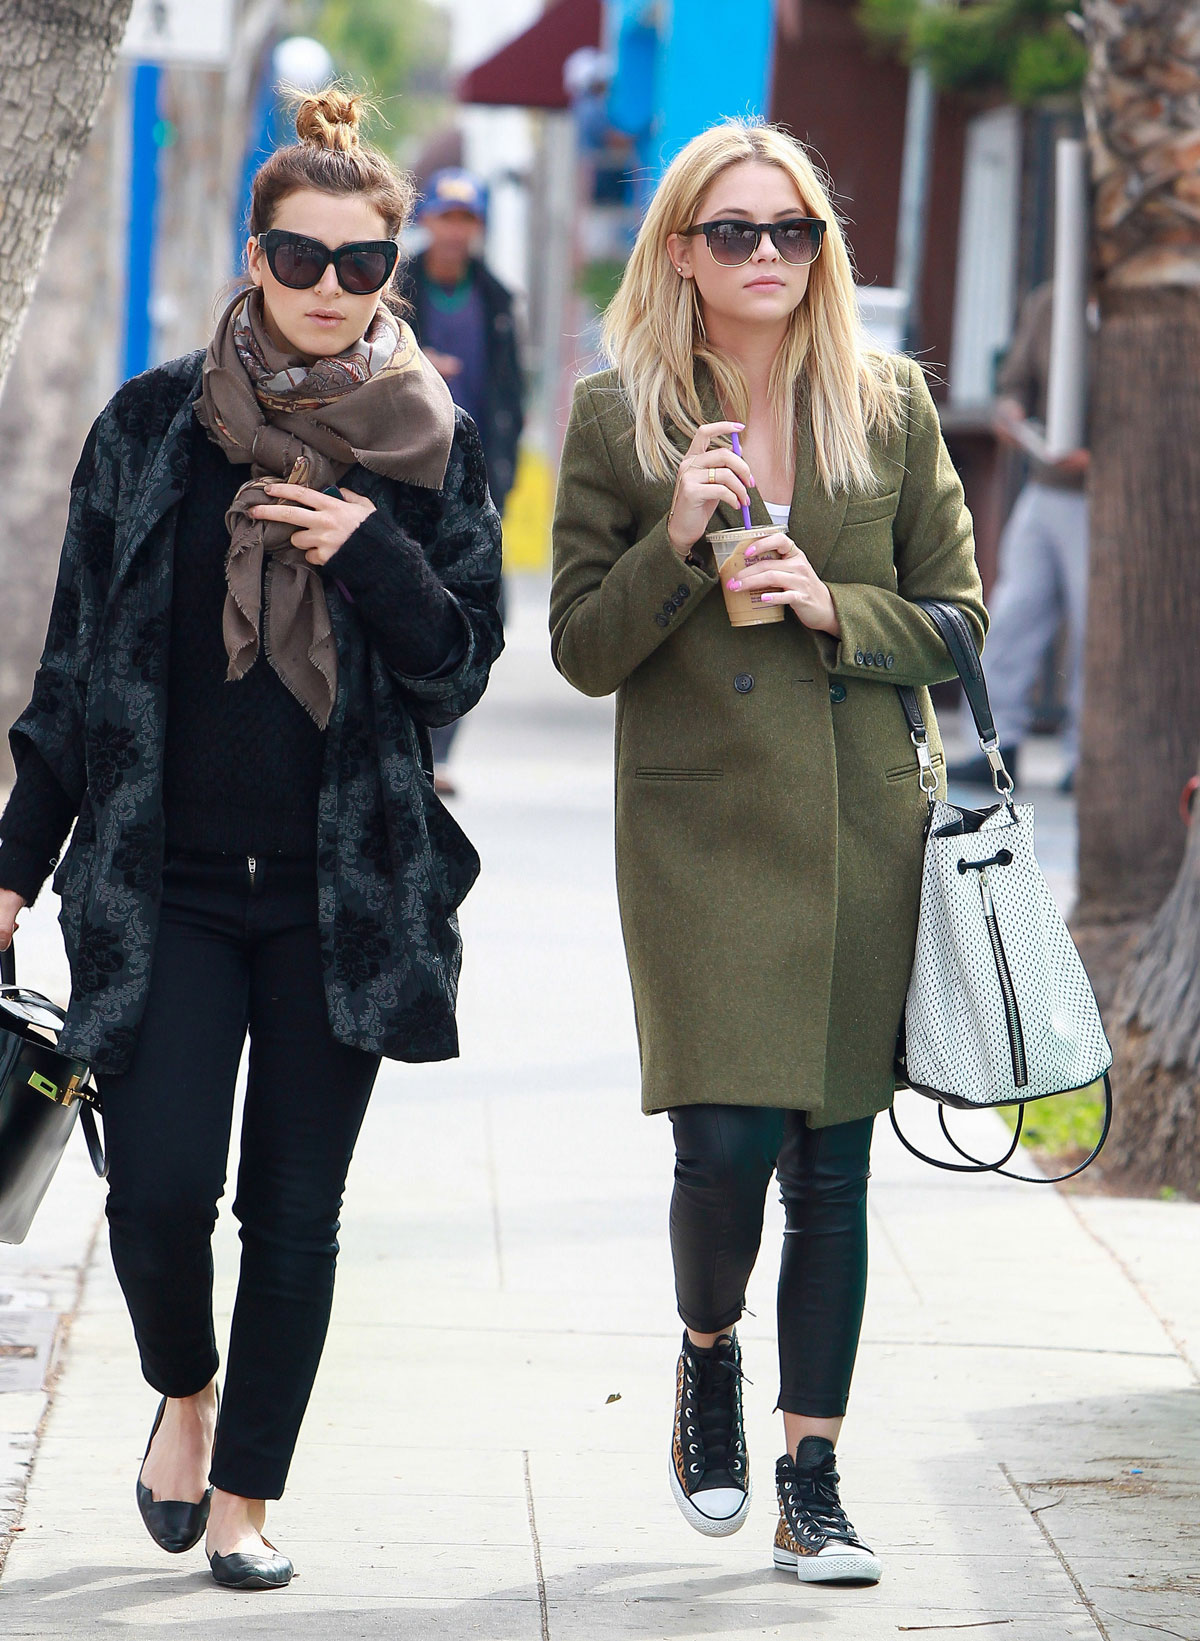 Ashley Benson grabs lunch with a friend